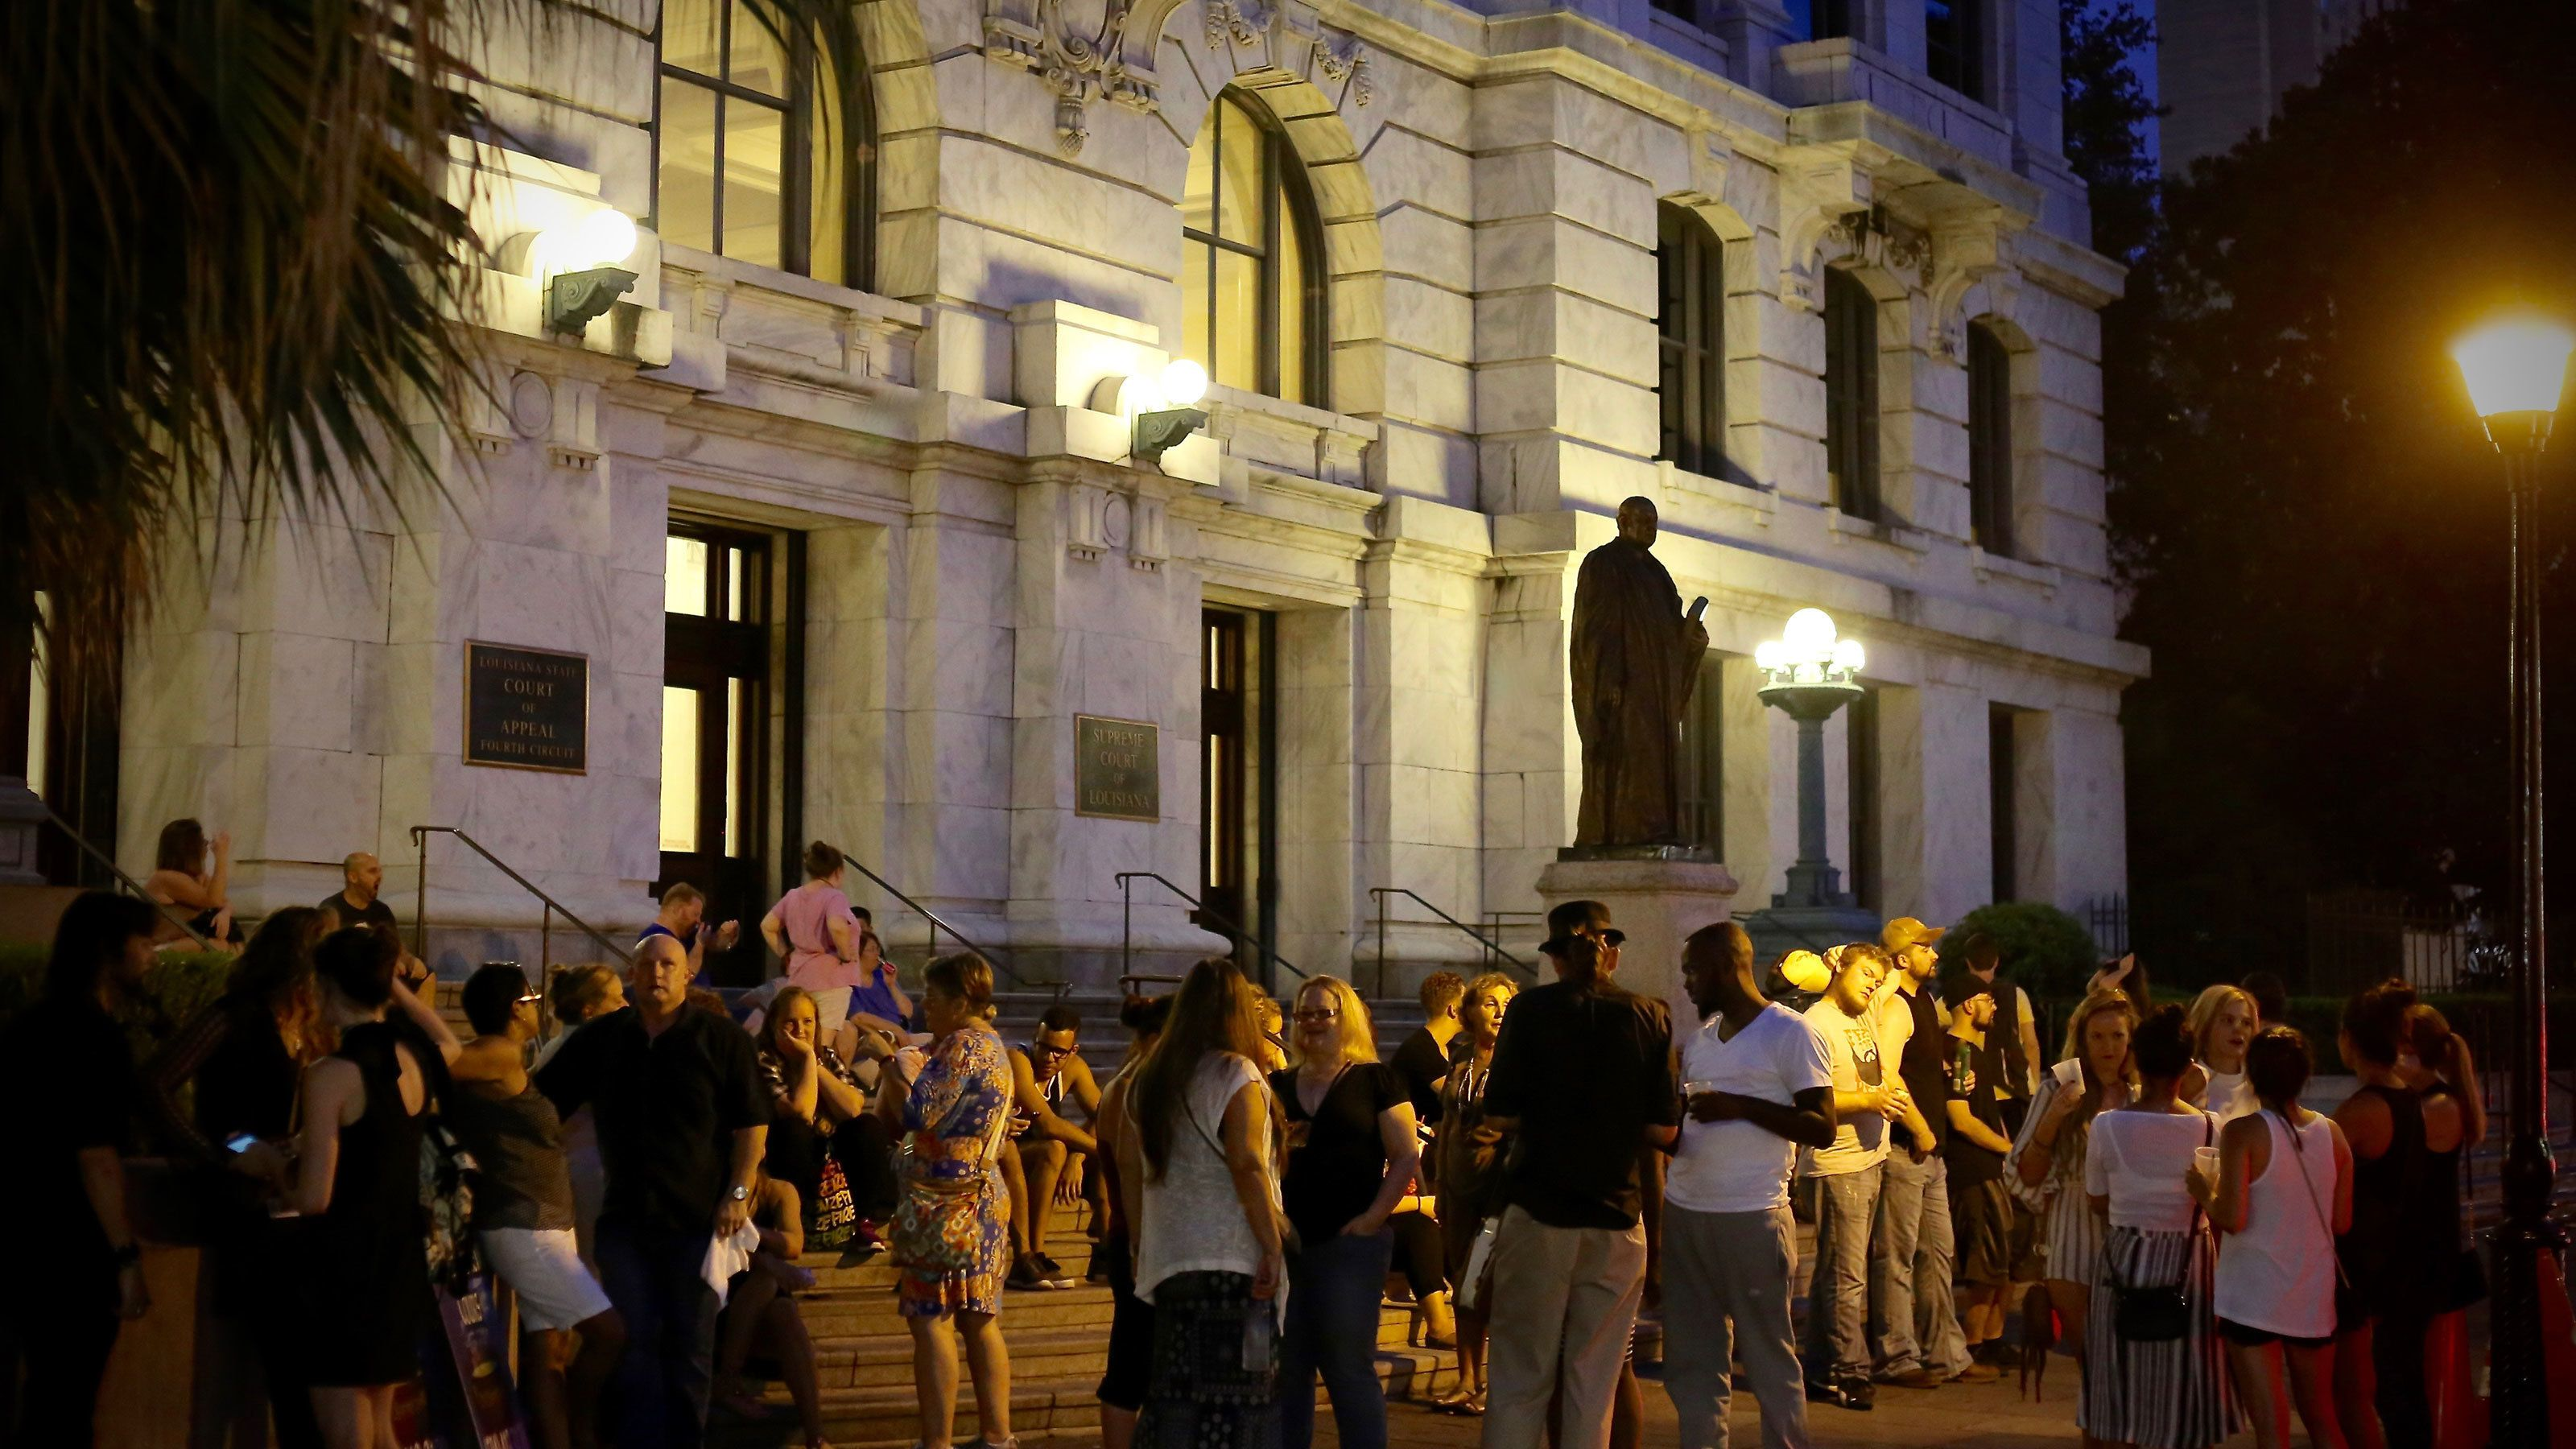 Tourist waiting outside building at night for tour to start in New Orleans